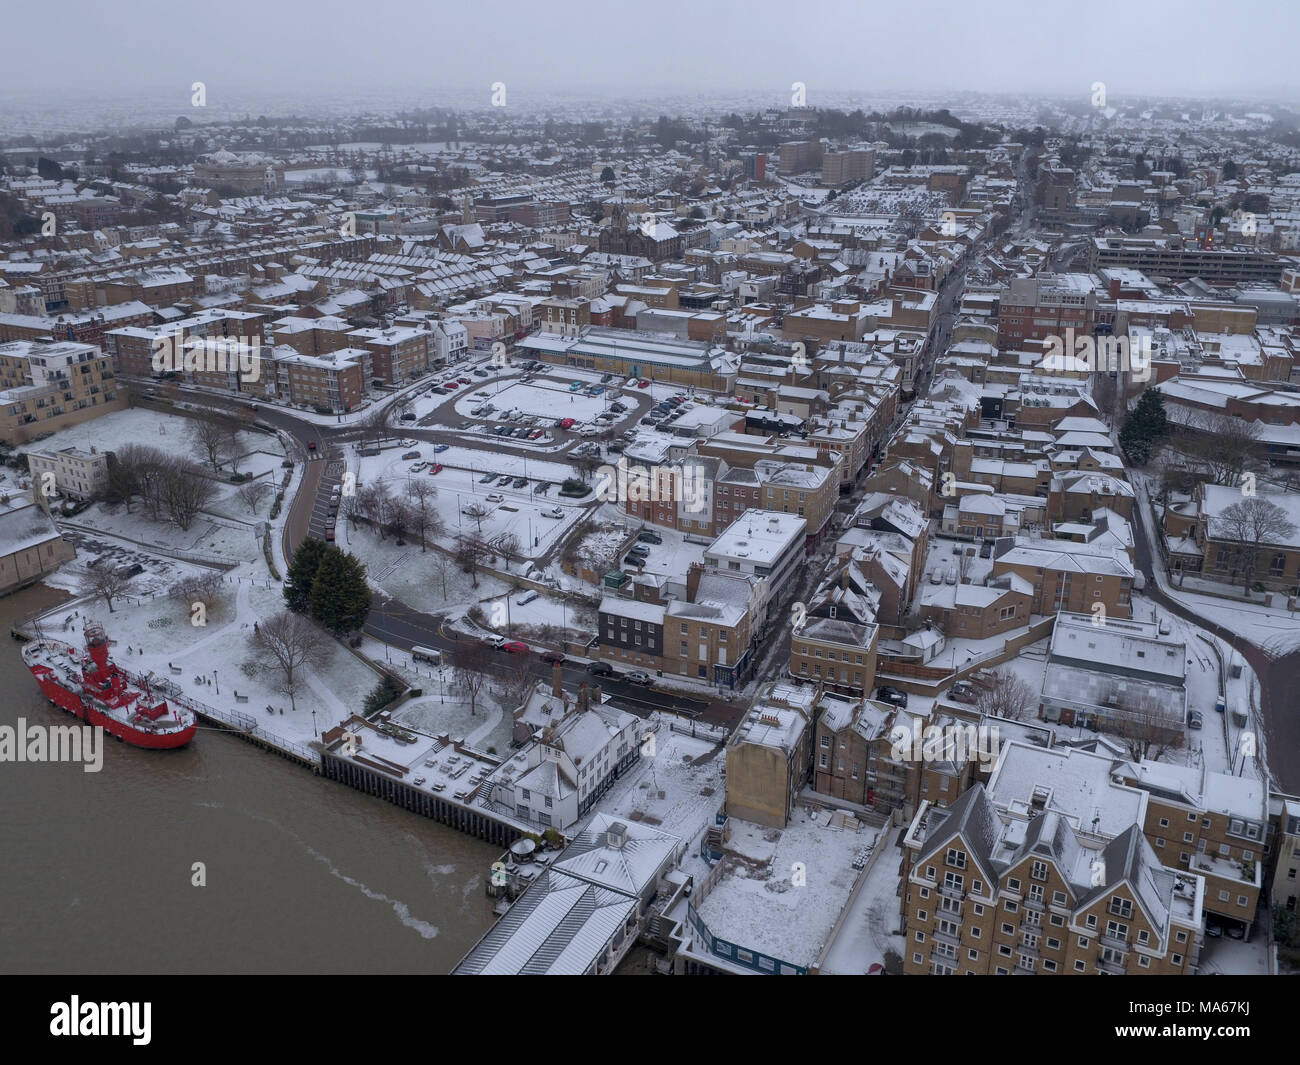 Aerial Images Taken By Drone Show The Snow Covering Landscape At Gravesend Kent Three People Have Reportedly Died And Many Others Been Involved